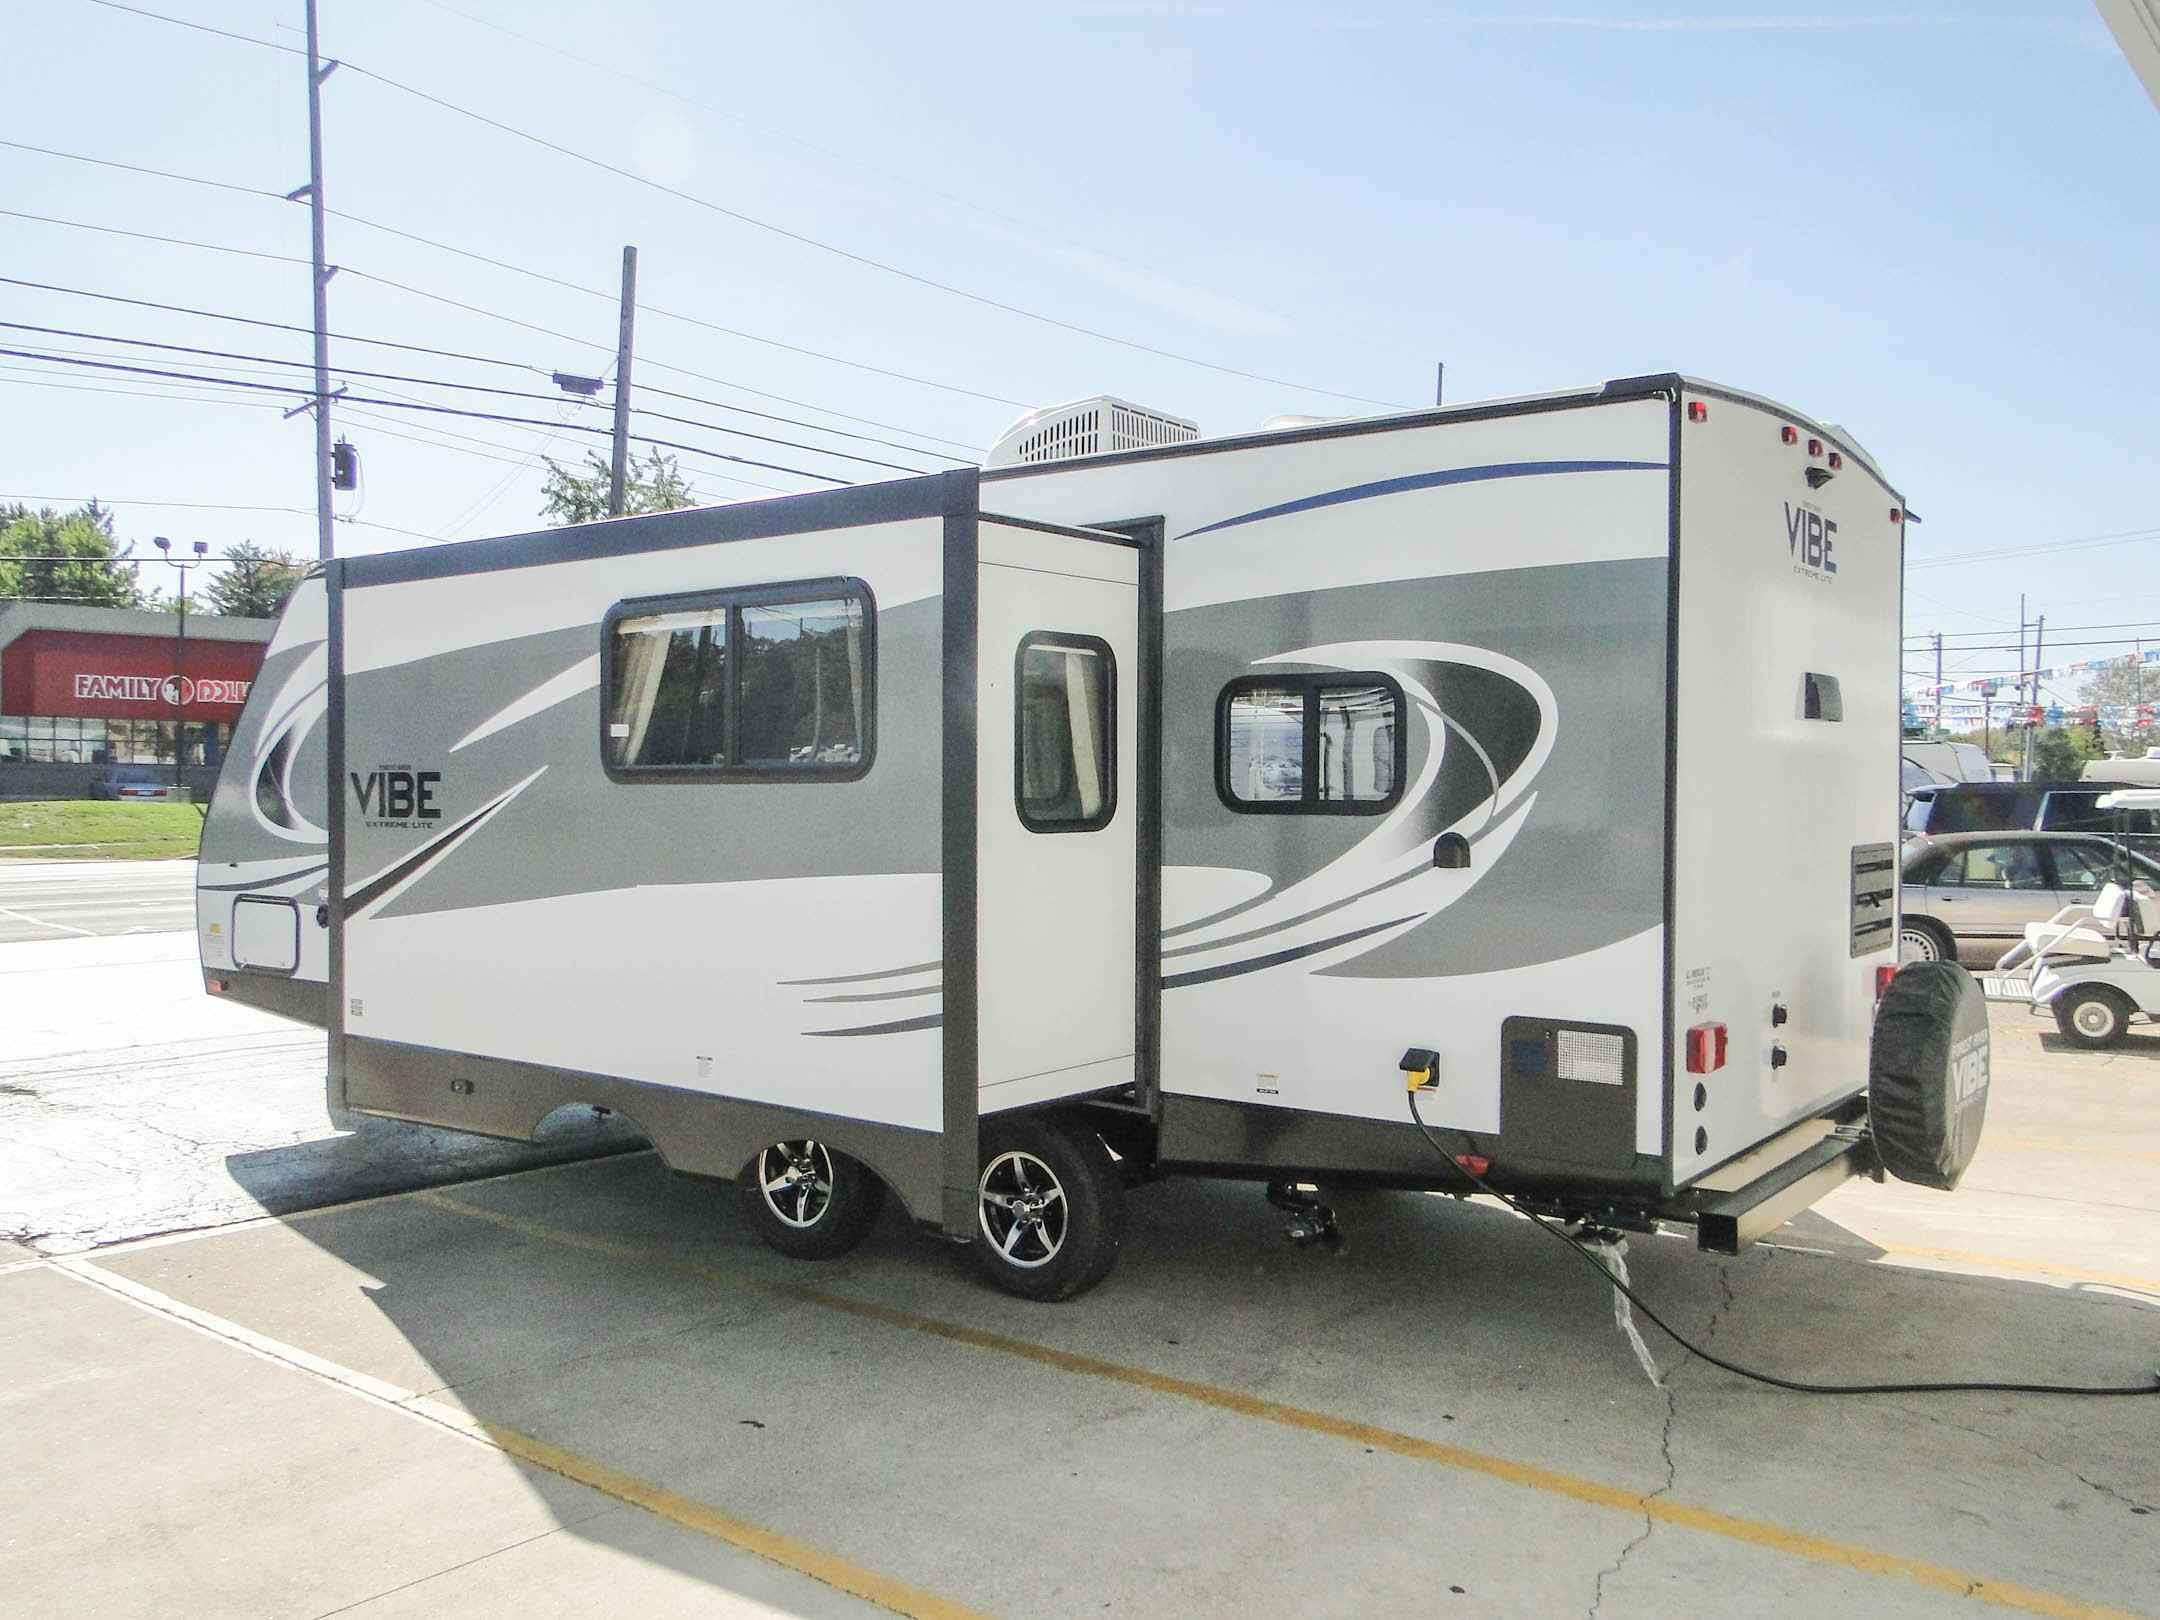 travel trailers with rear kitchen sink plumbing 2018 new forest river vibe extreme lite 258rks